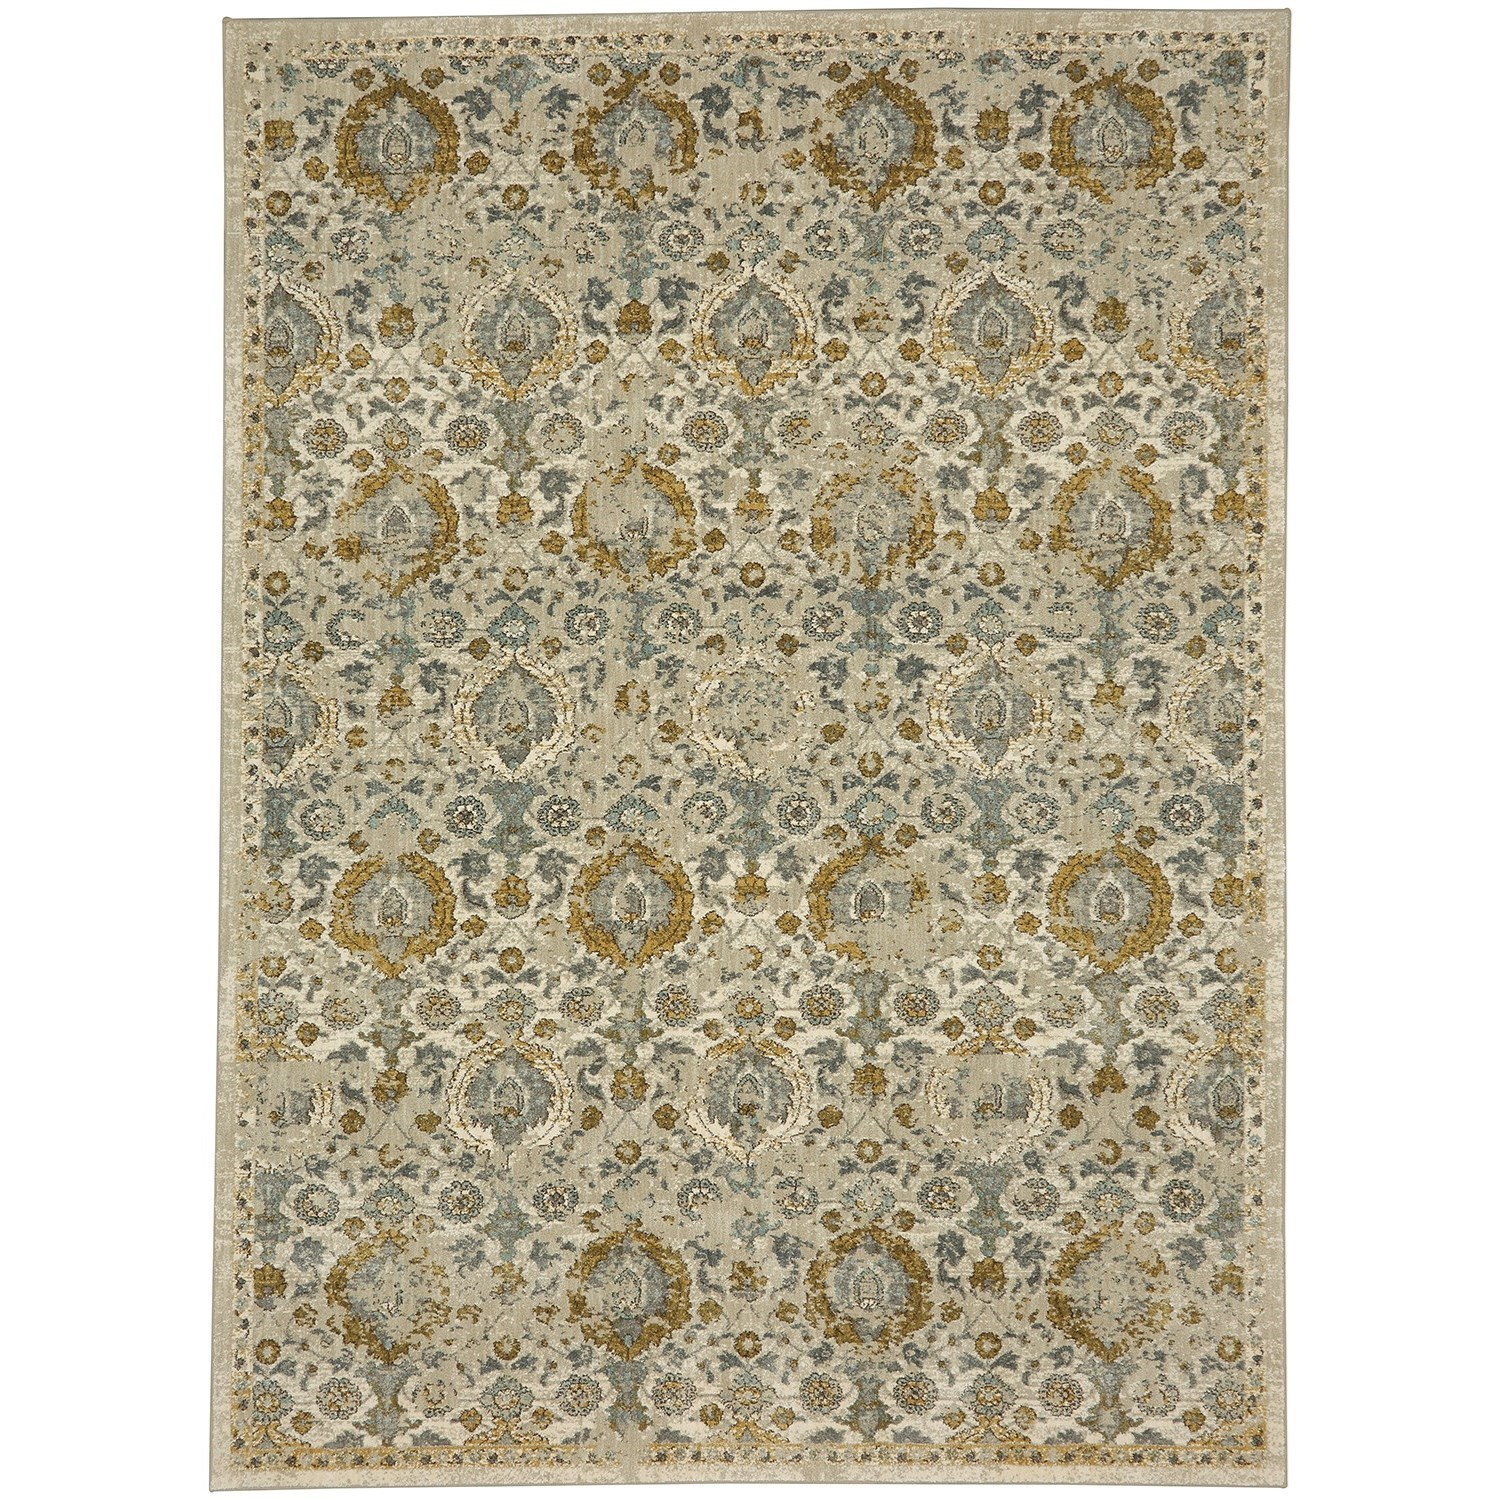 Touchstone 8'x11' Rectangle Ornamental Area Rug by Karastan Rugs at Darvin Furniture